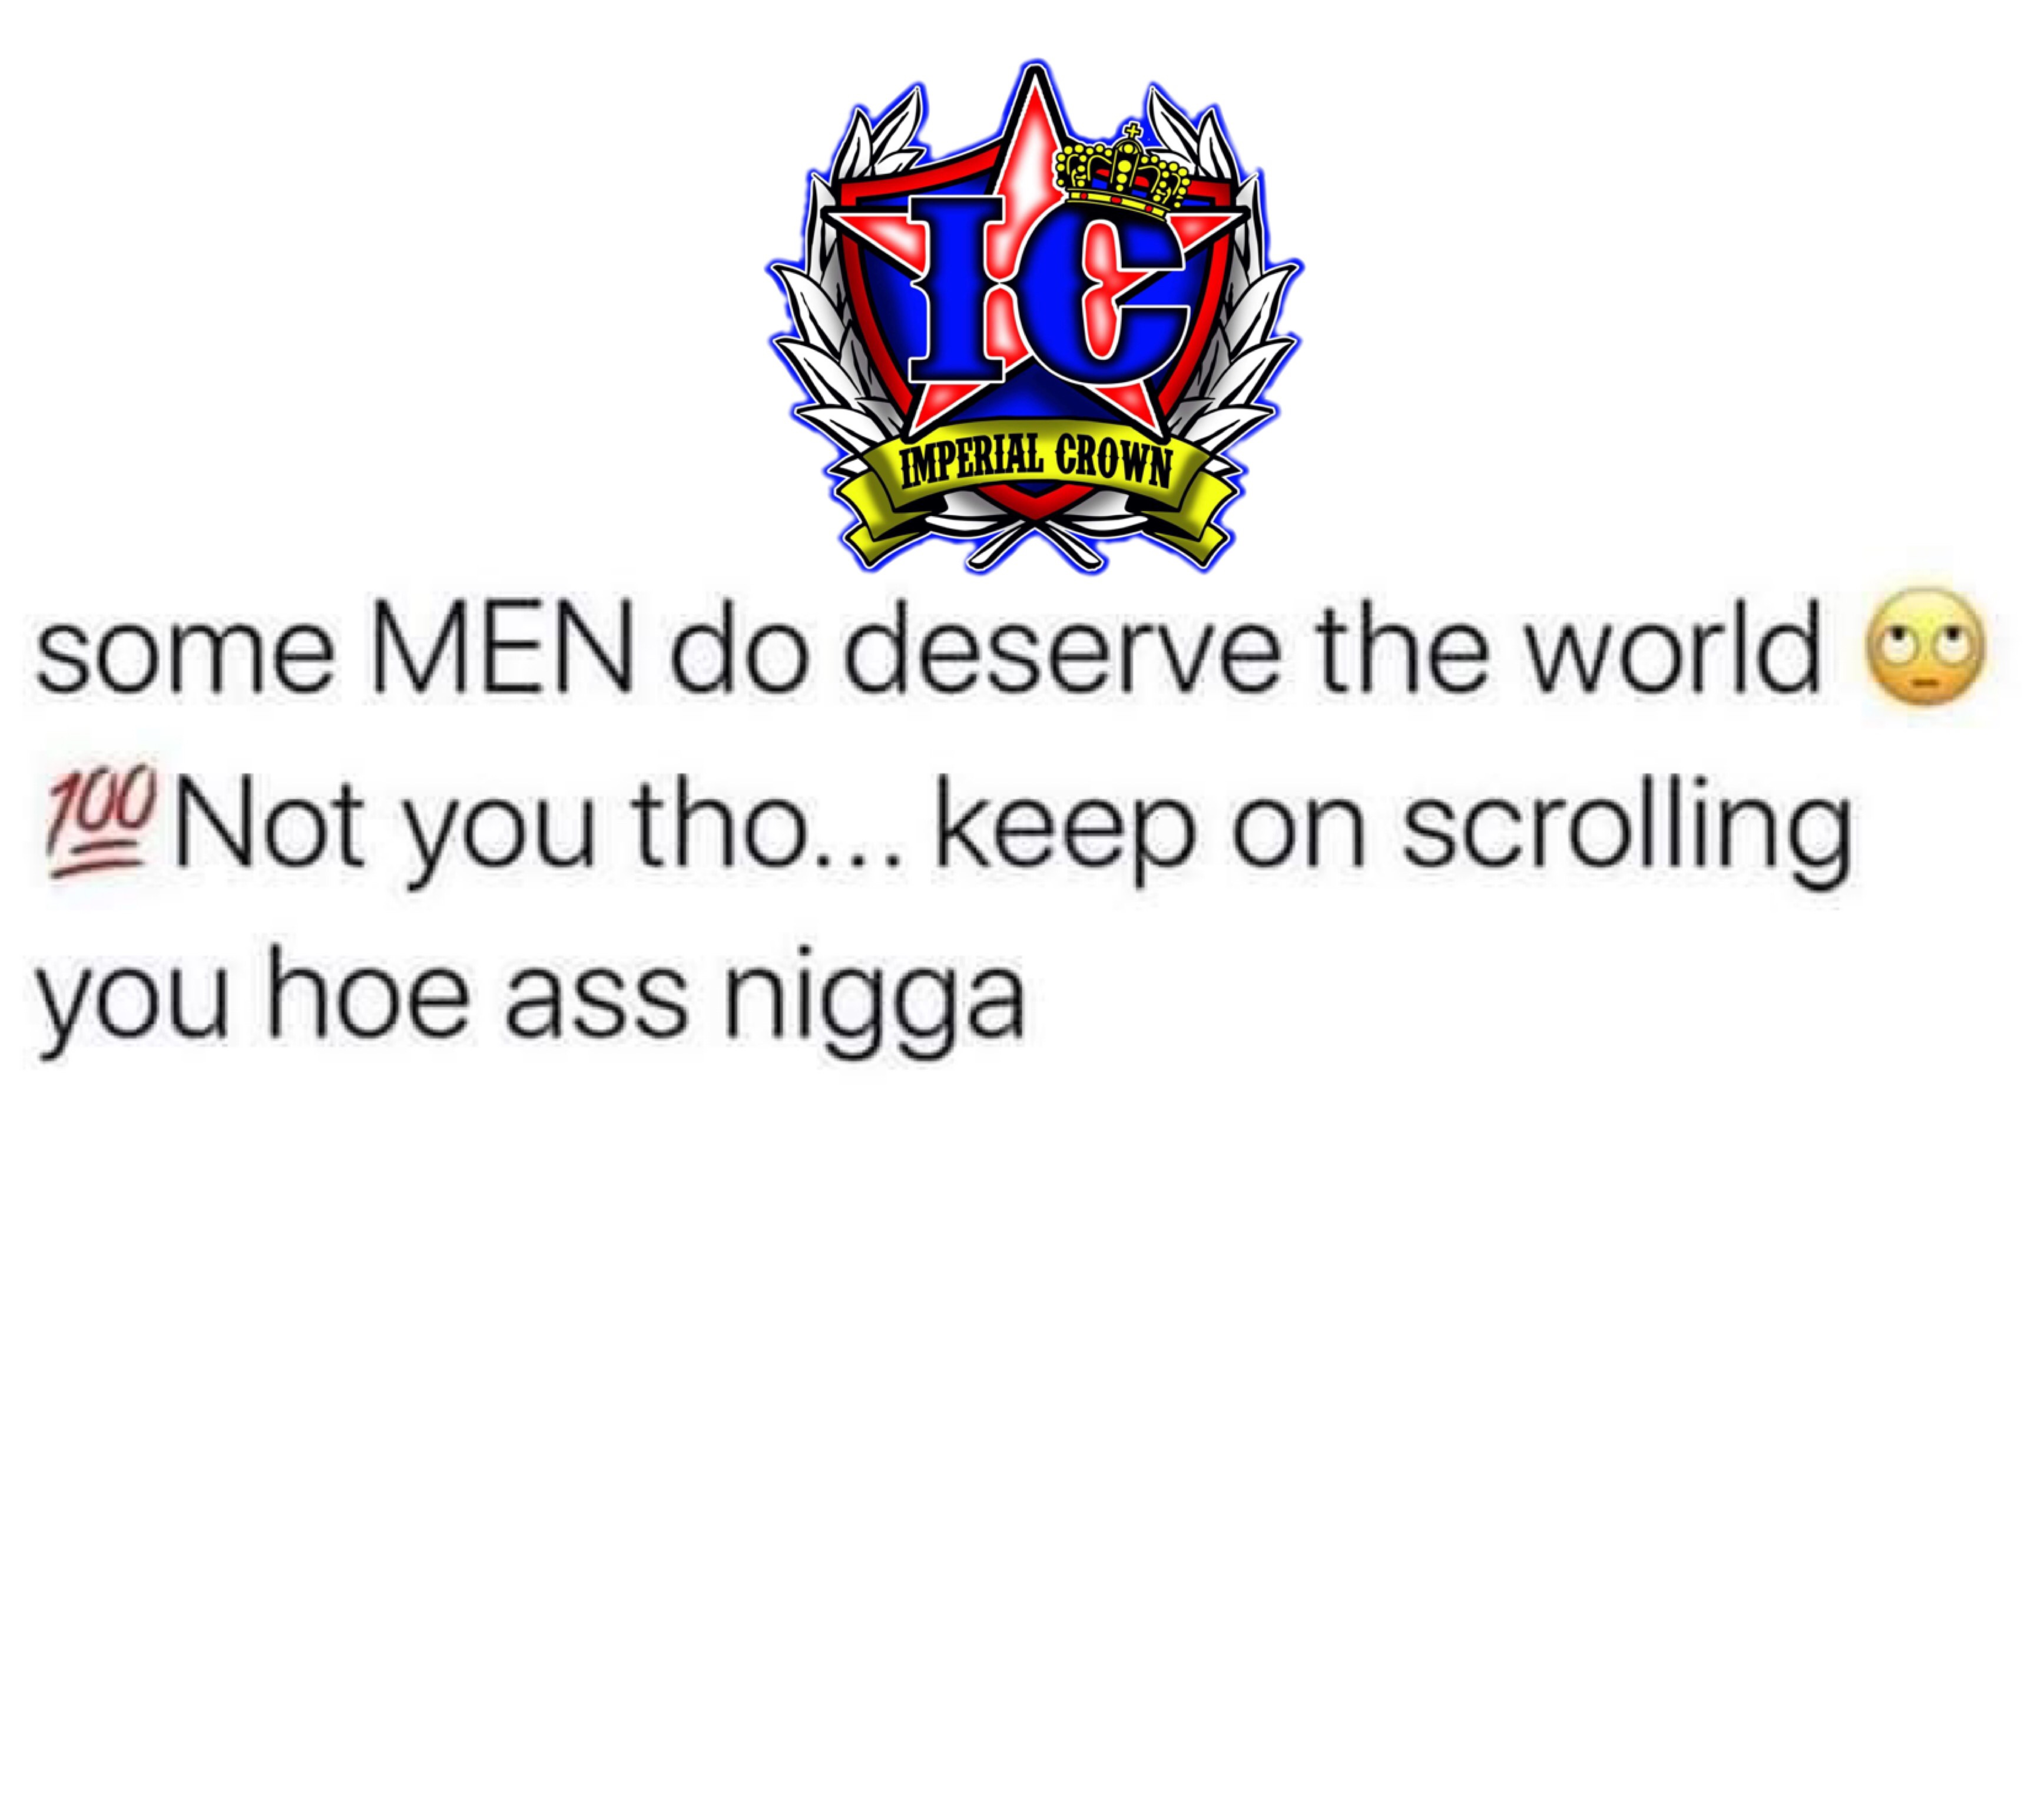 Some men do deserve the world not you tho keep on scrolling you hoe ass nigga